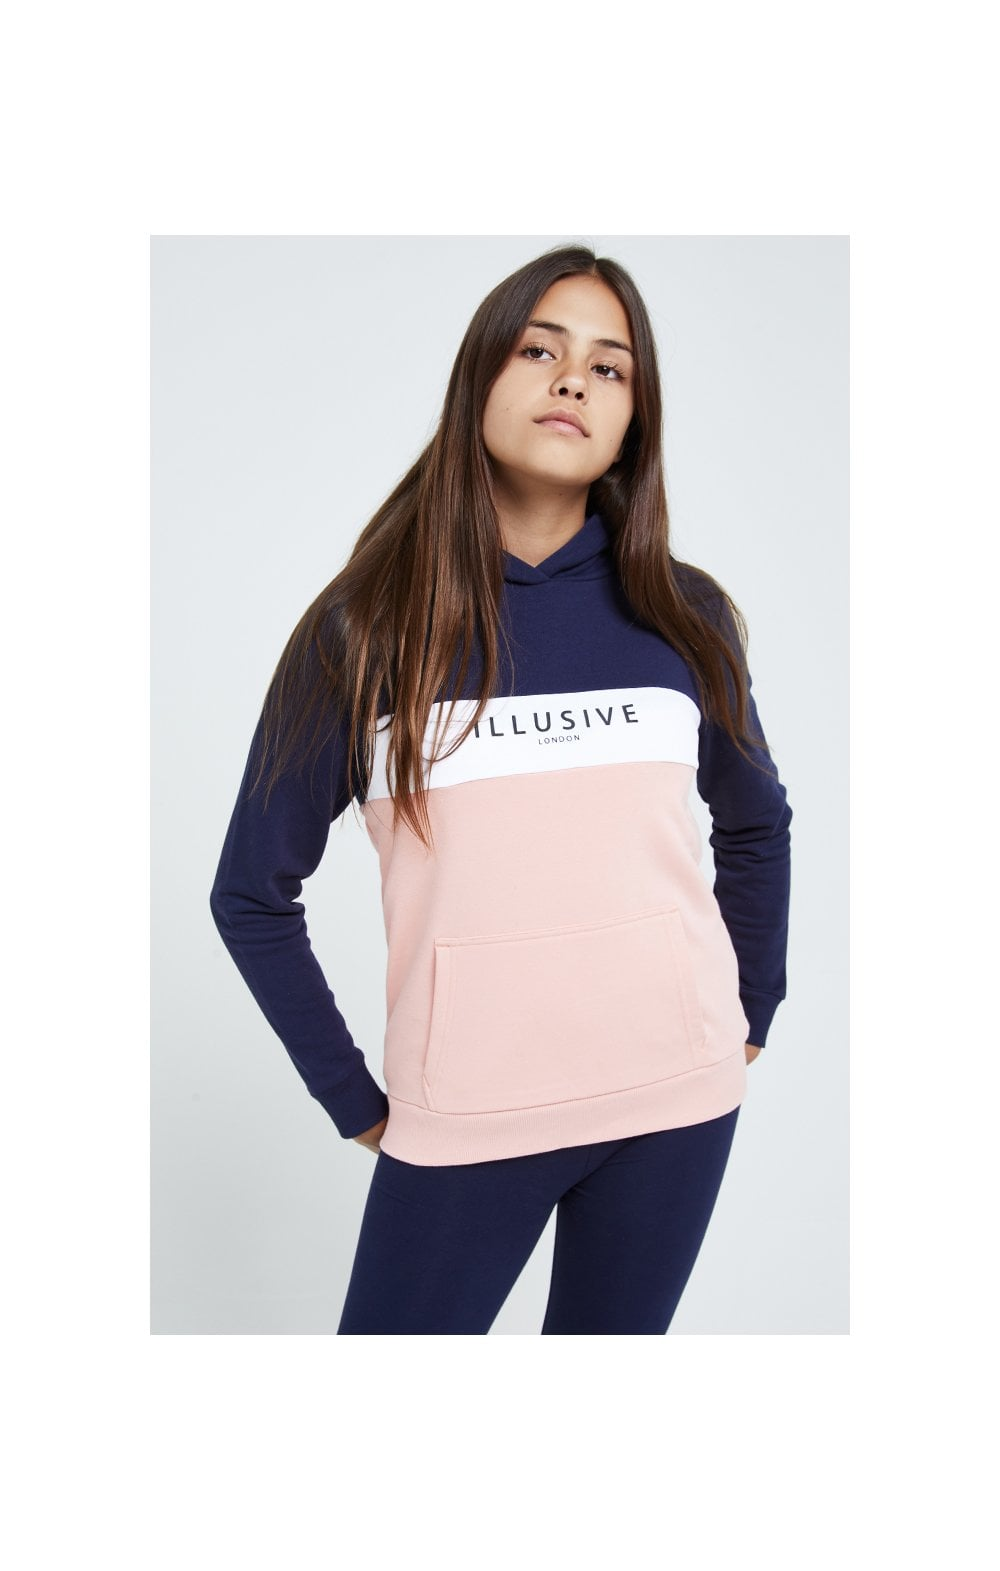 Illusive London Colour Block Hoodie - Navy & Pink (1)